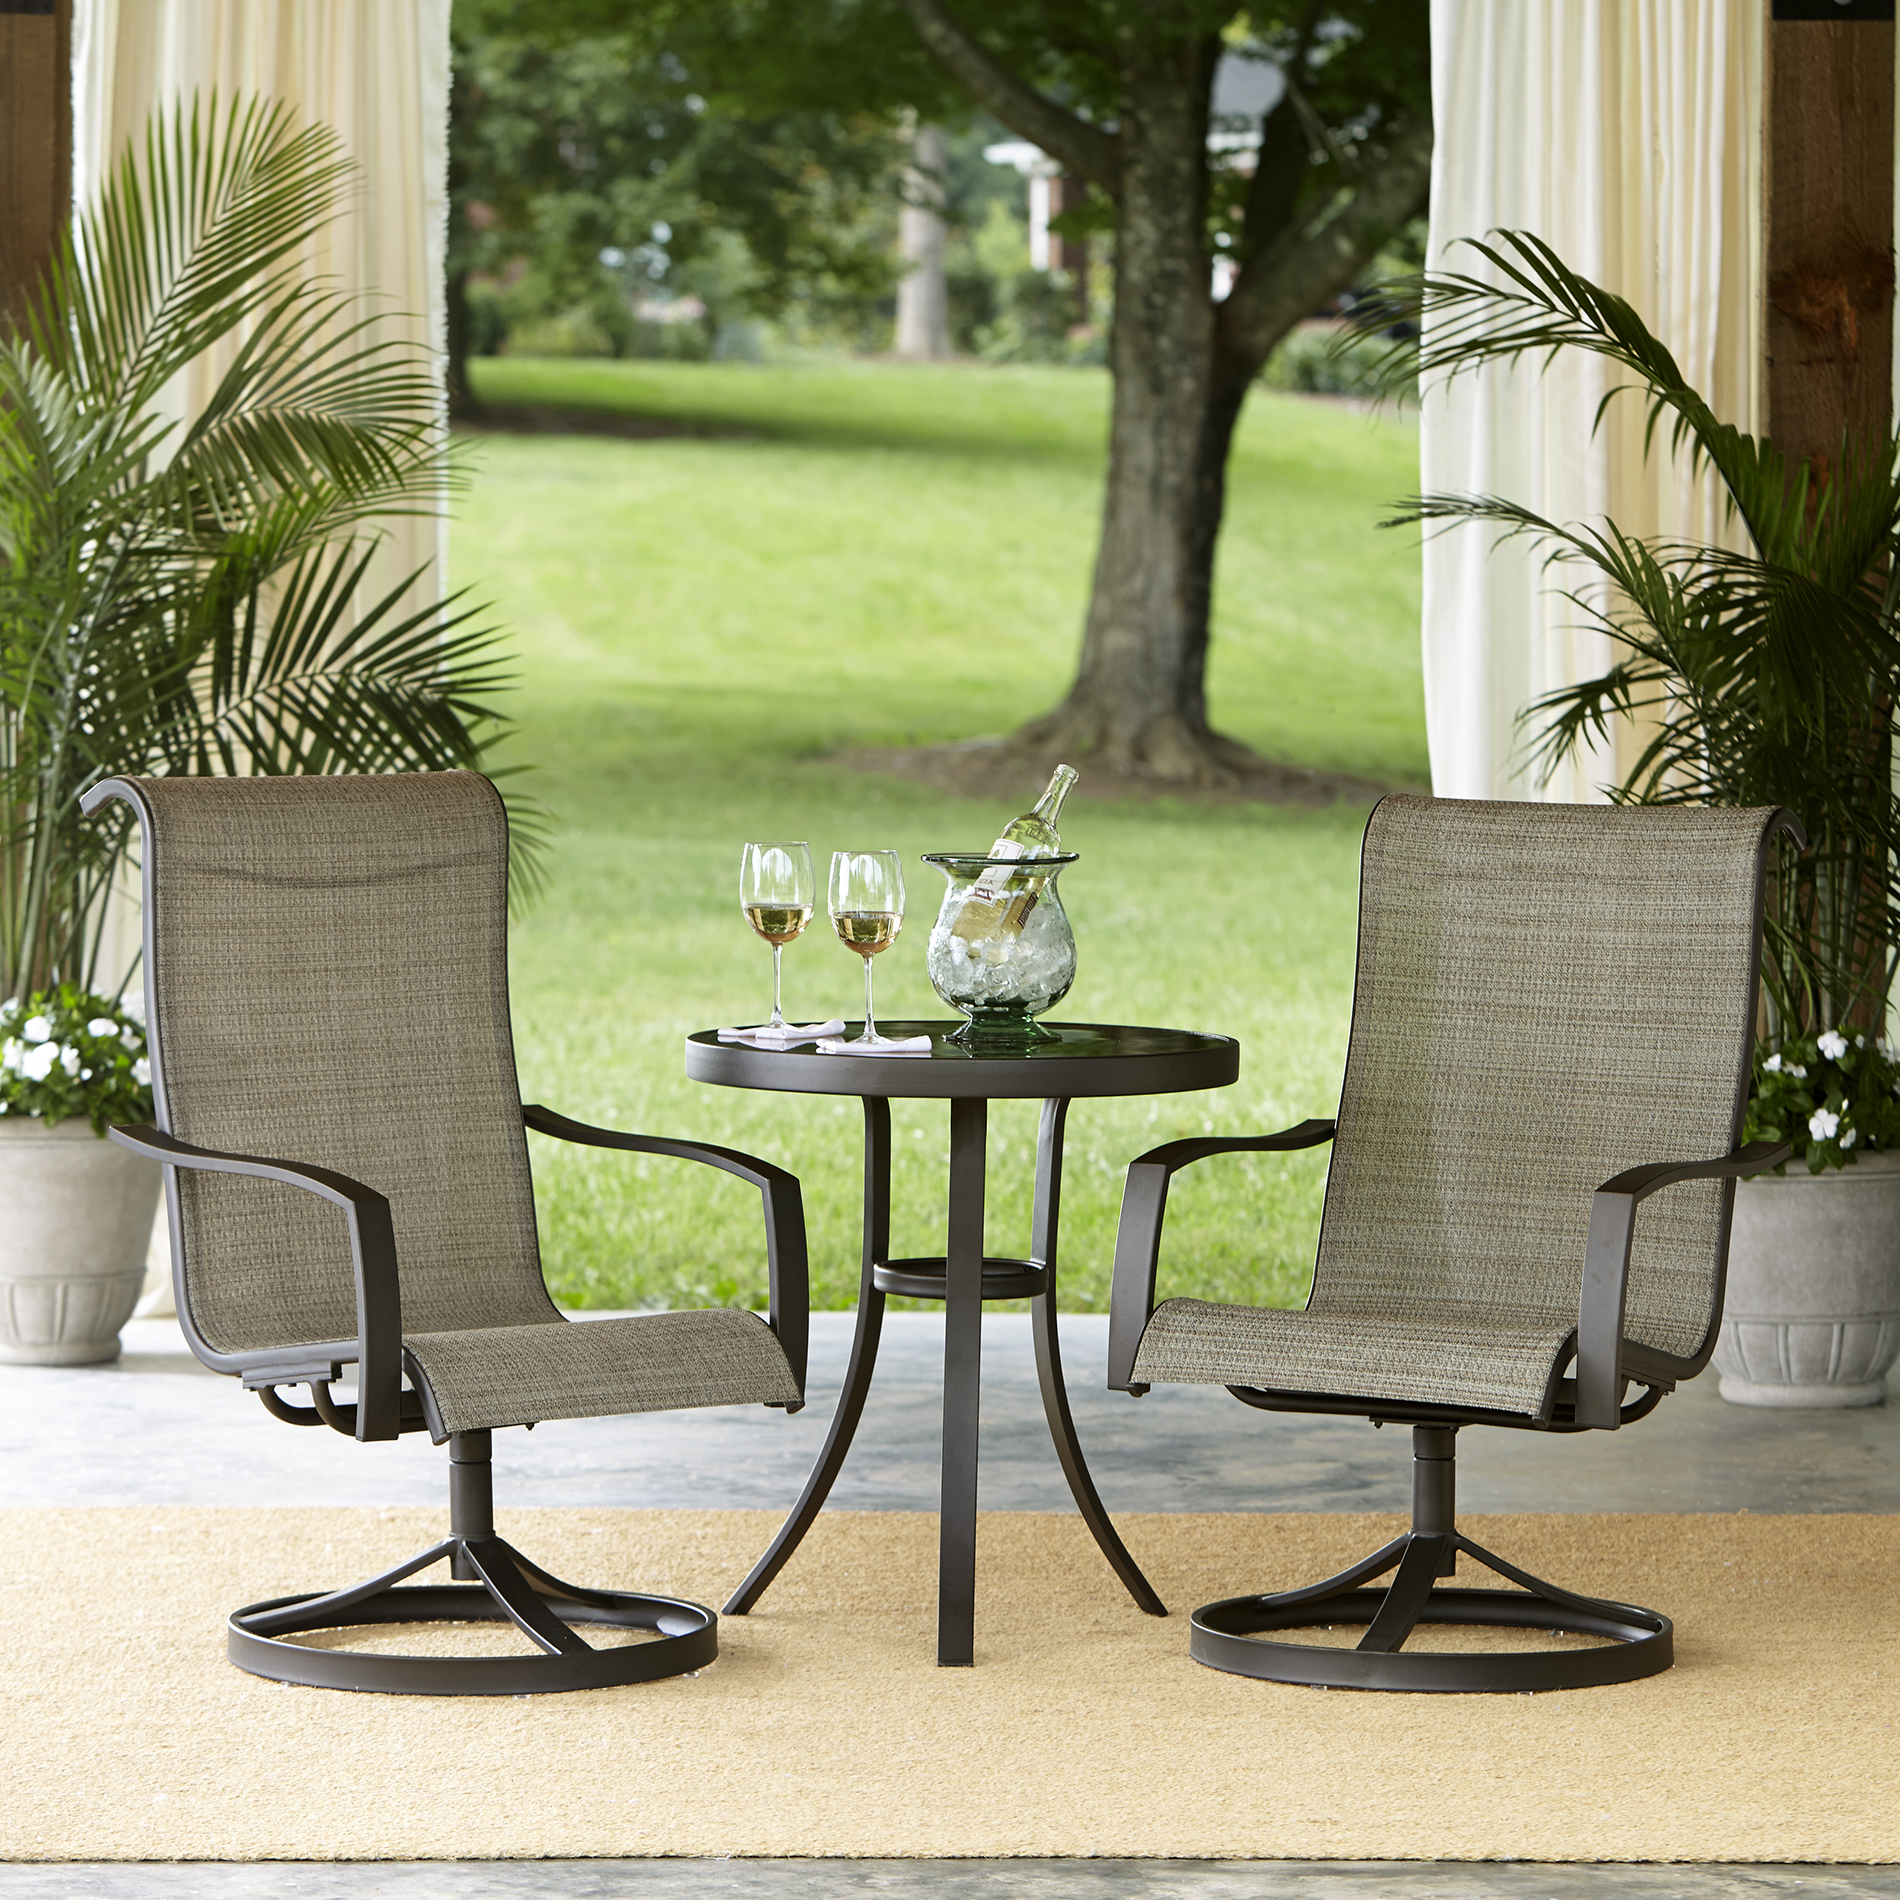 Garden Oasis Providence 3pcs Bistro Set - Limited ... on Outdoor Living Ltd  id=41179